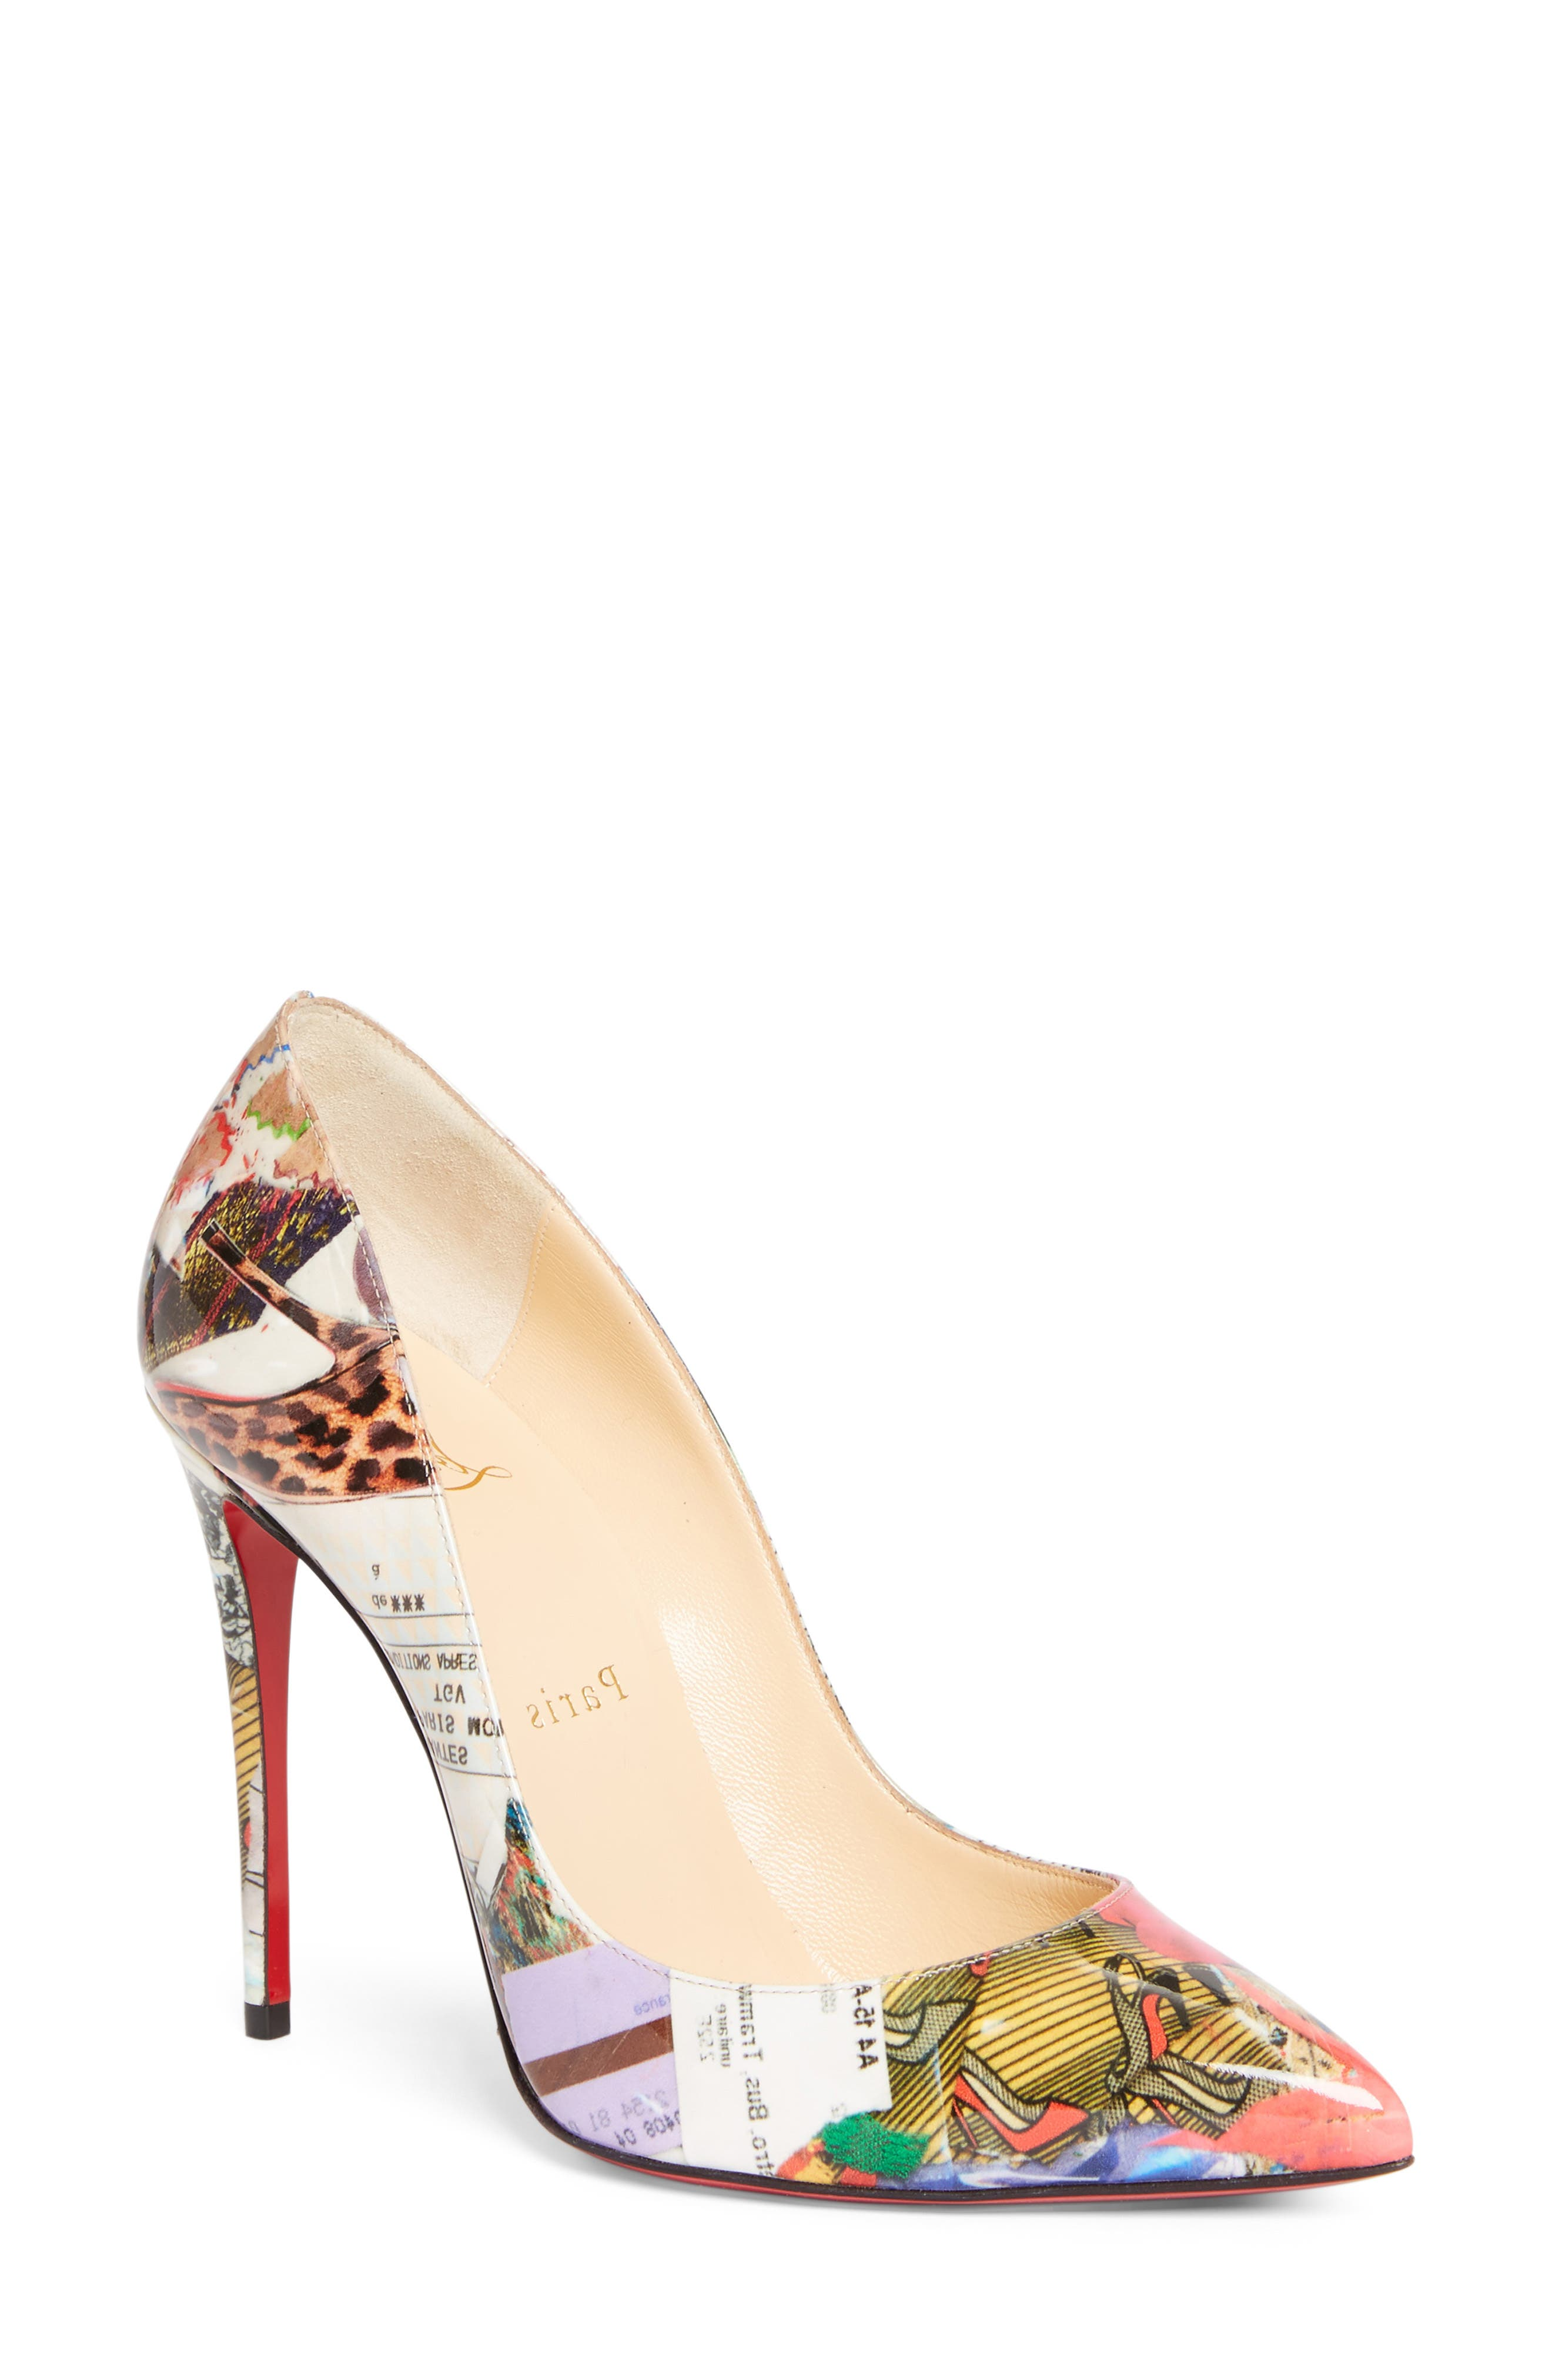 Alternate Image 1 Selected - Christian Louboutin Pigalle Follies Pump (Women)